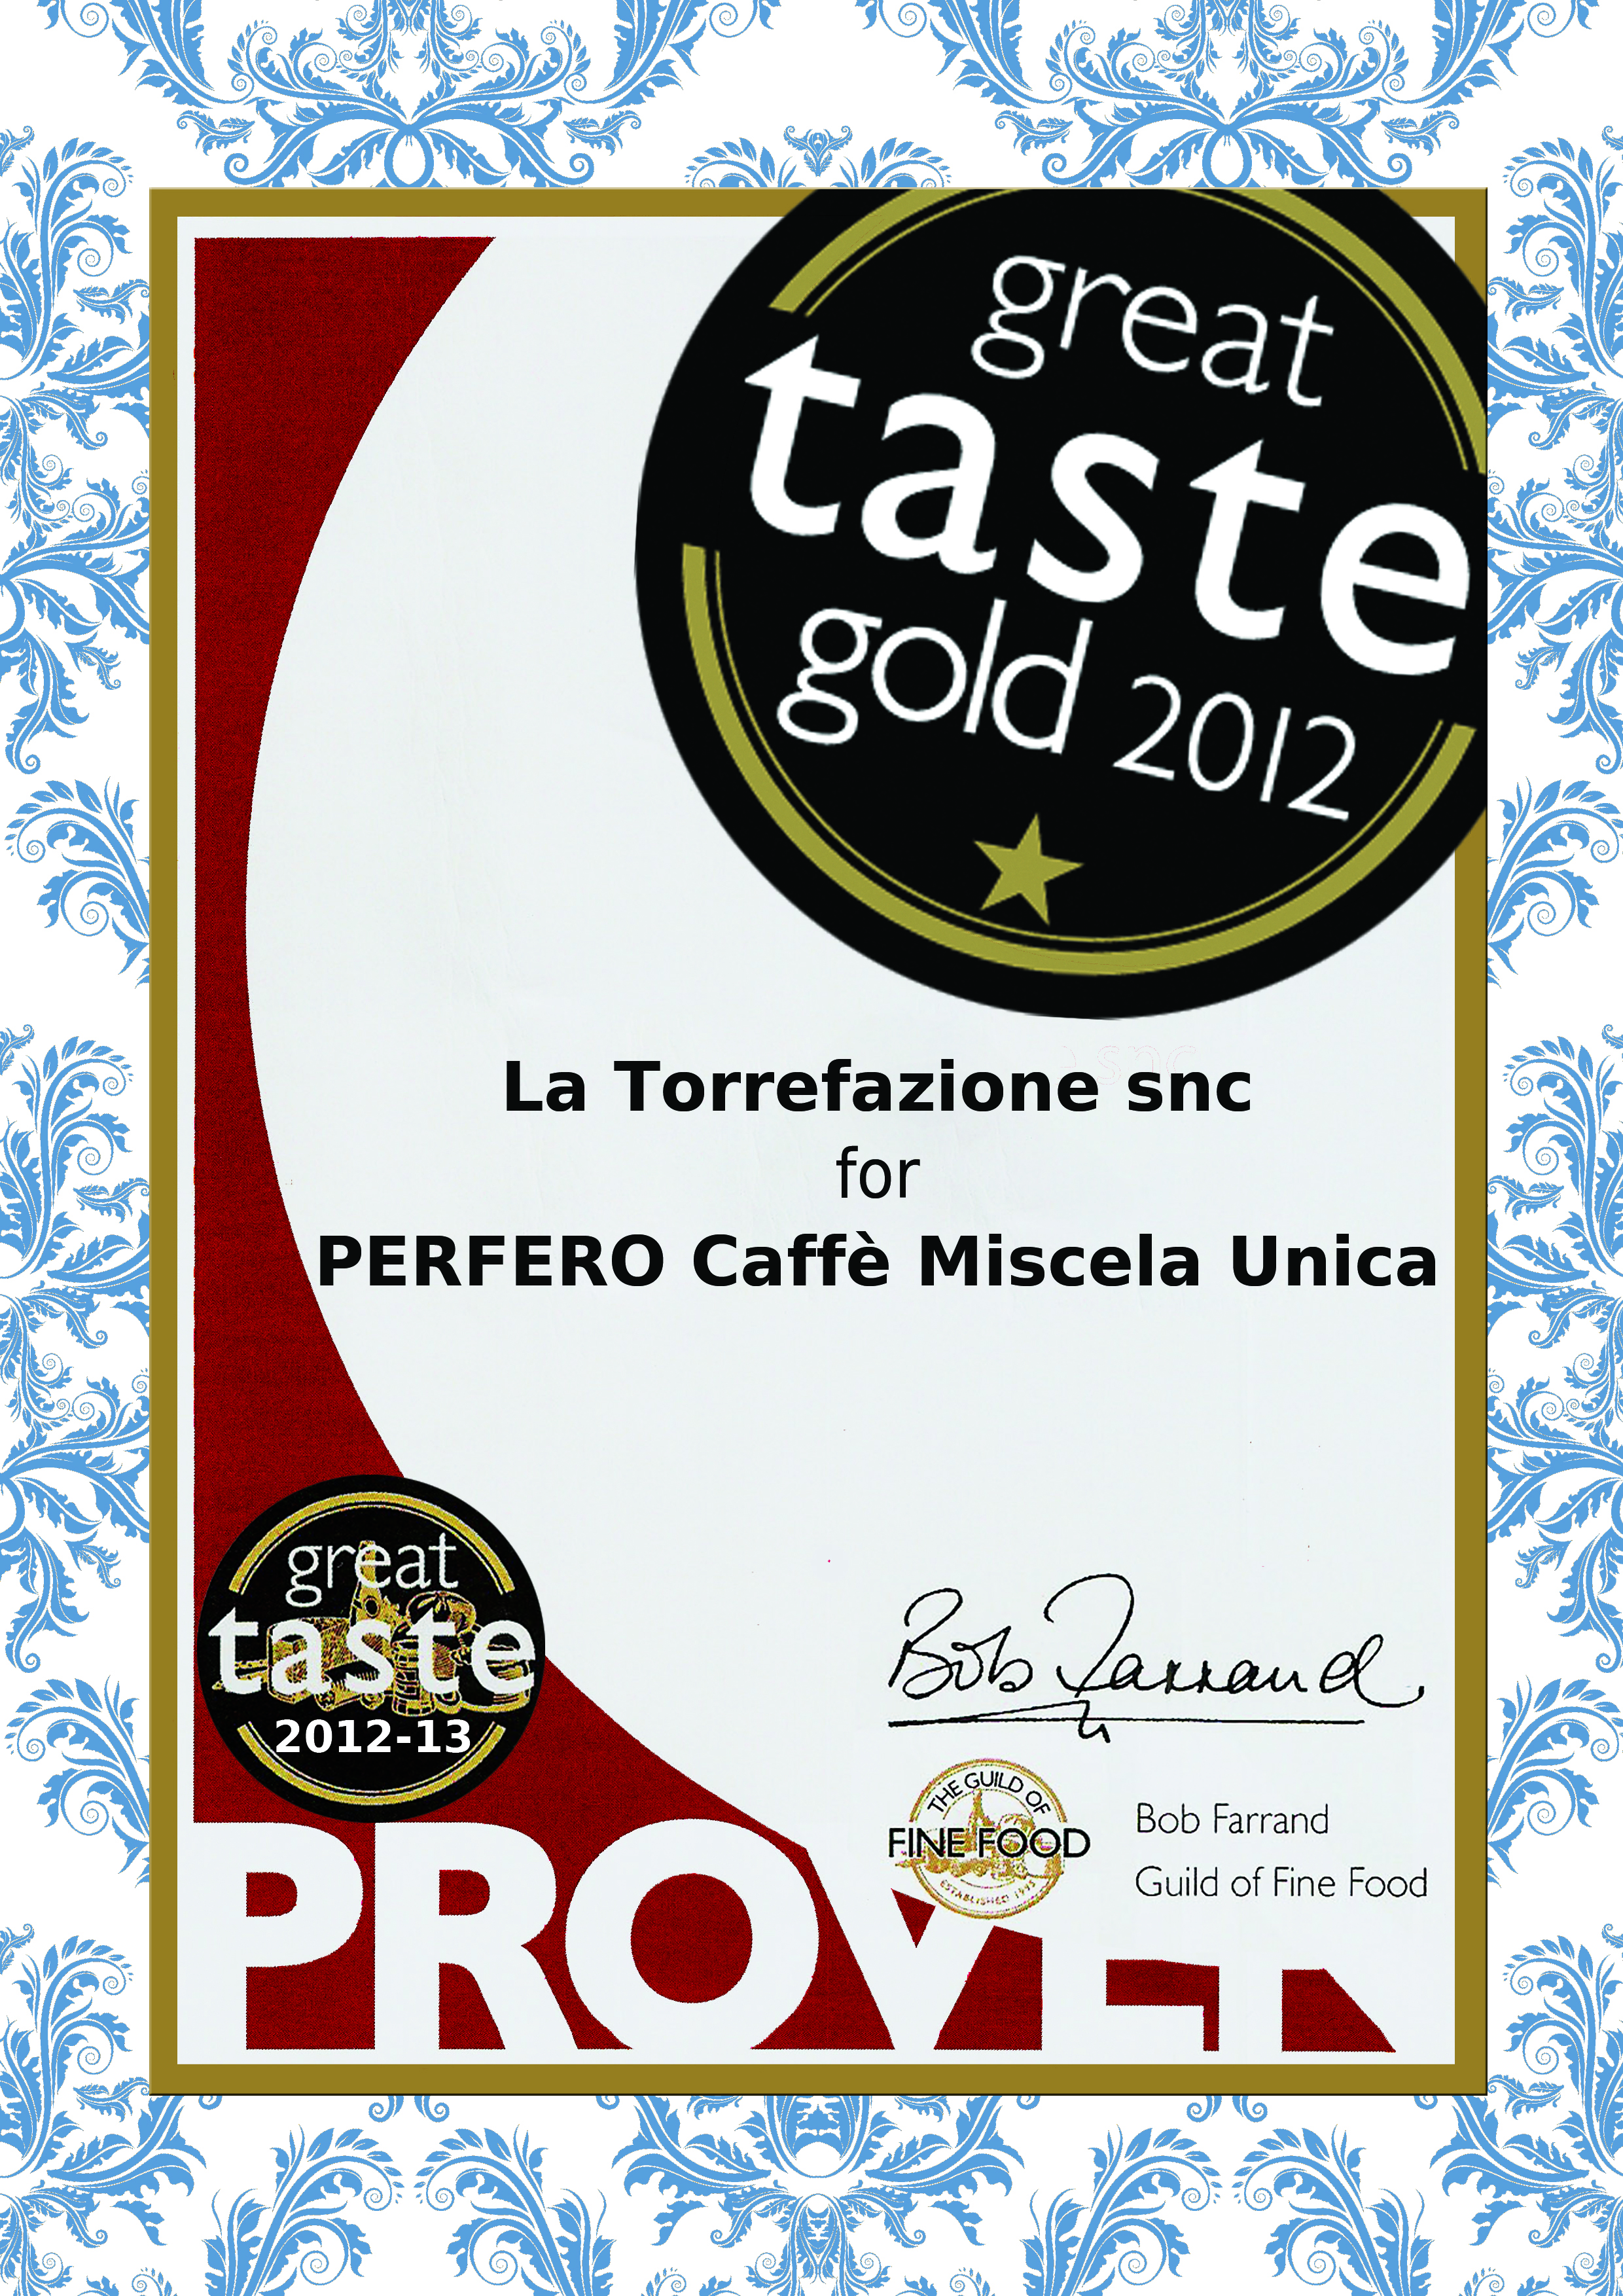 perfero caffe-great taste